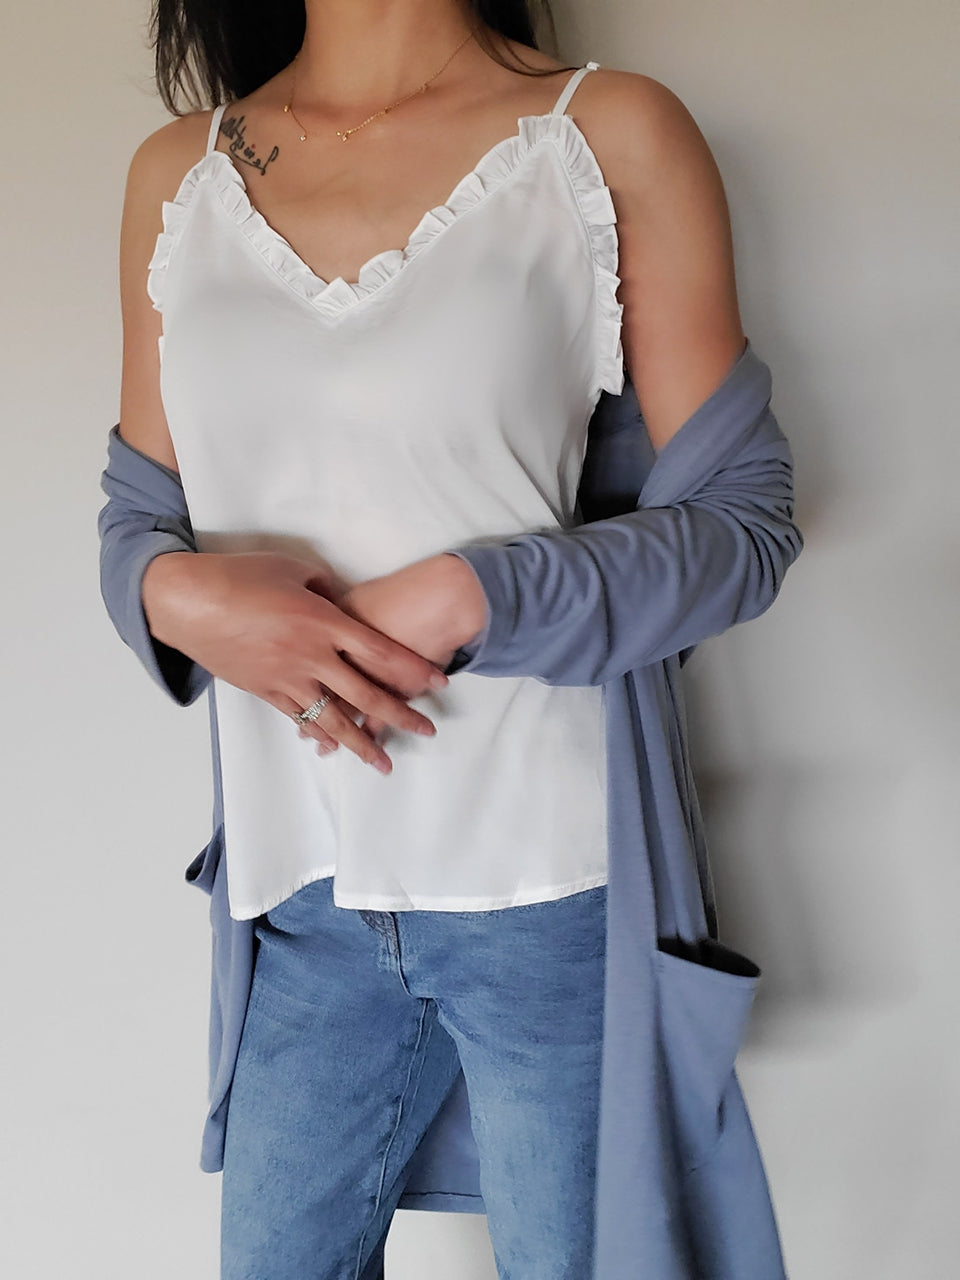 V-Neck Ruffle Camisole Tank Top-White (S-2XL)